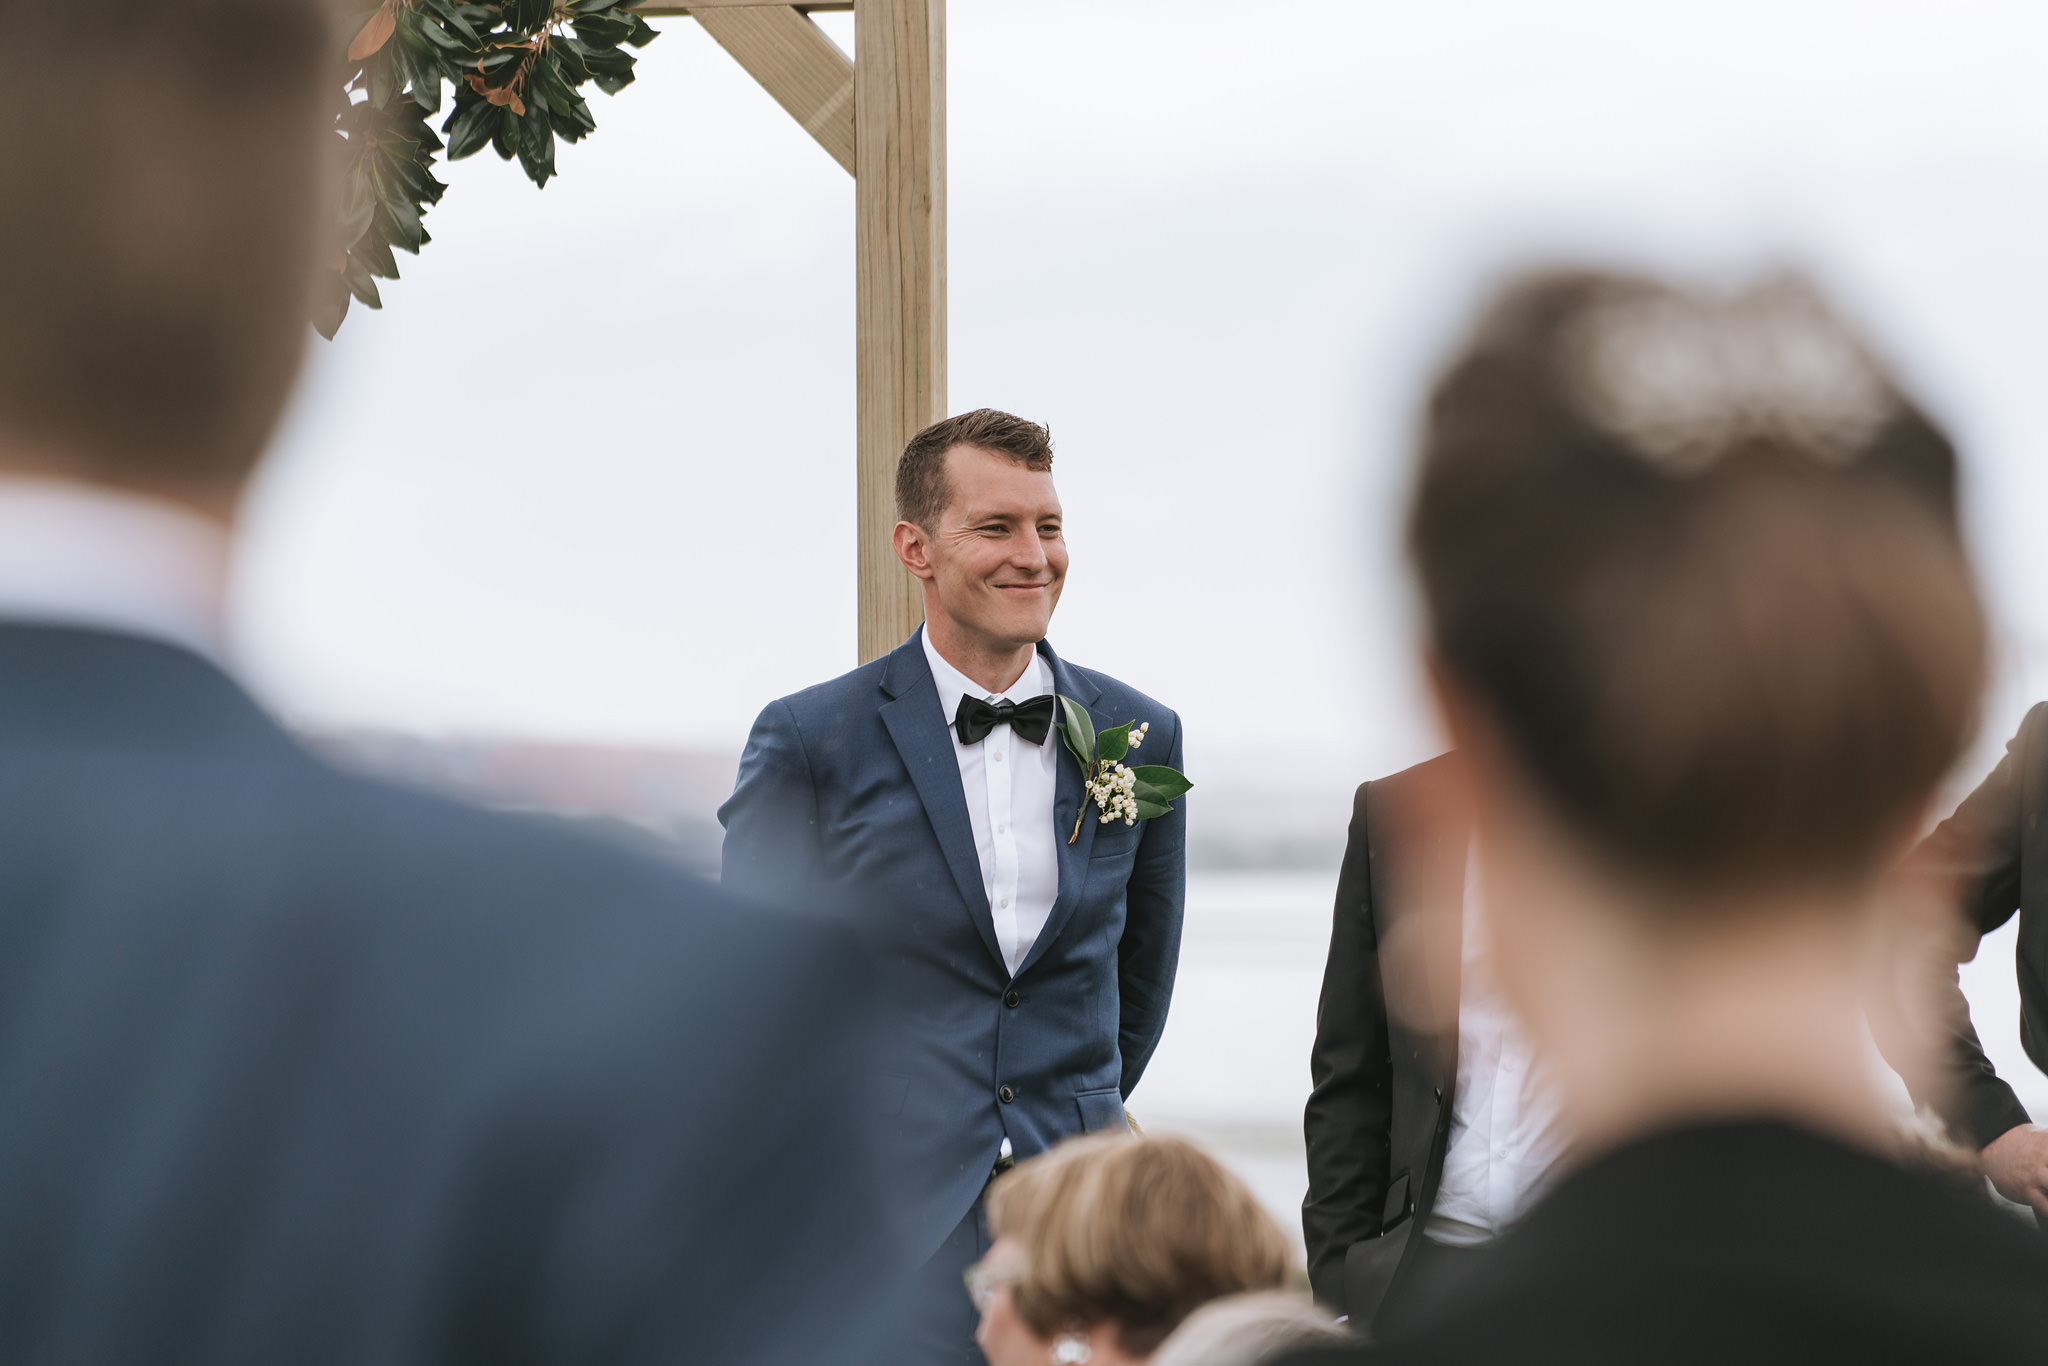 newfound-s-a-tauranga-new-zealand-wedding-photography-405